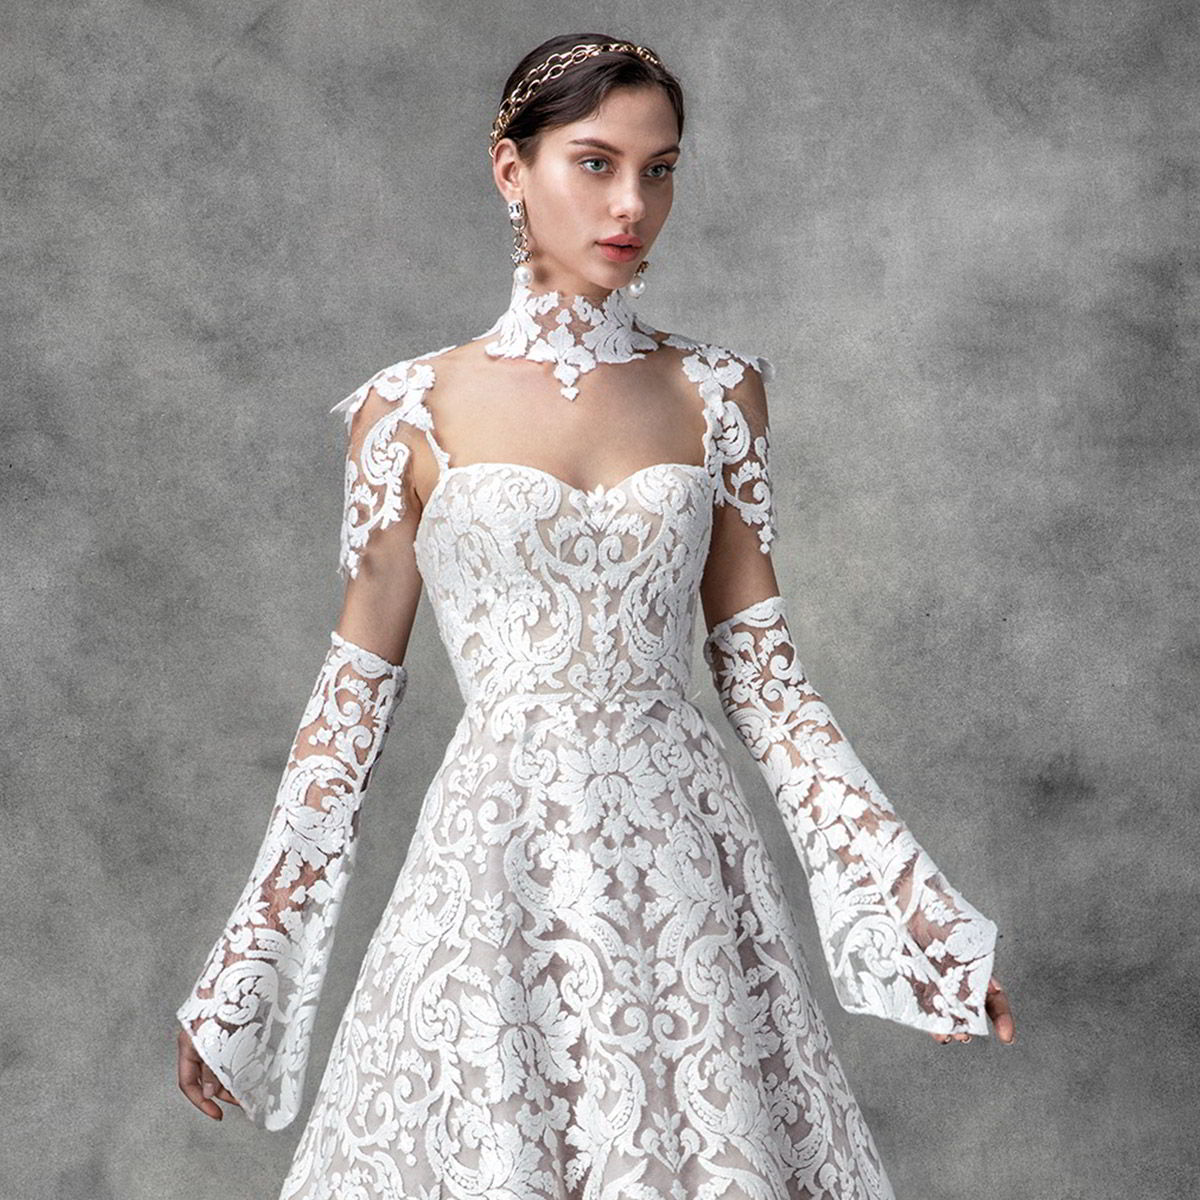 victoria kyriakides spring 2020 bridal collection featured on wedding inspirasi thumbnail